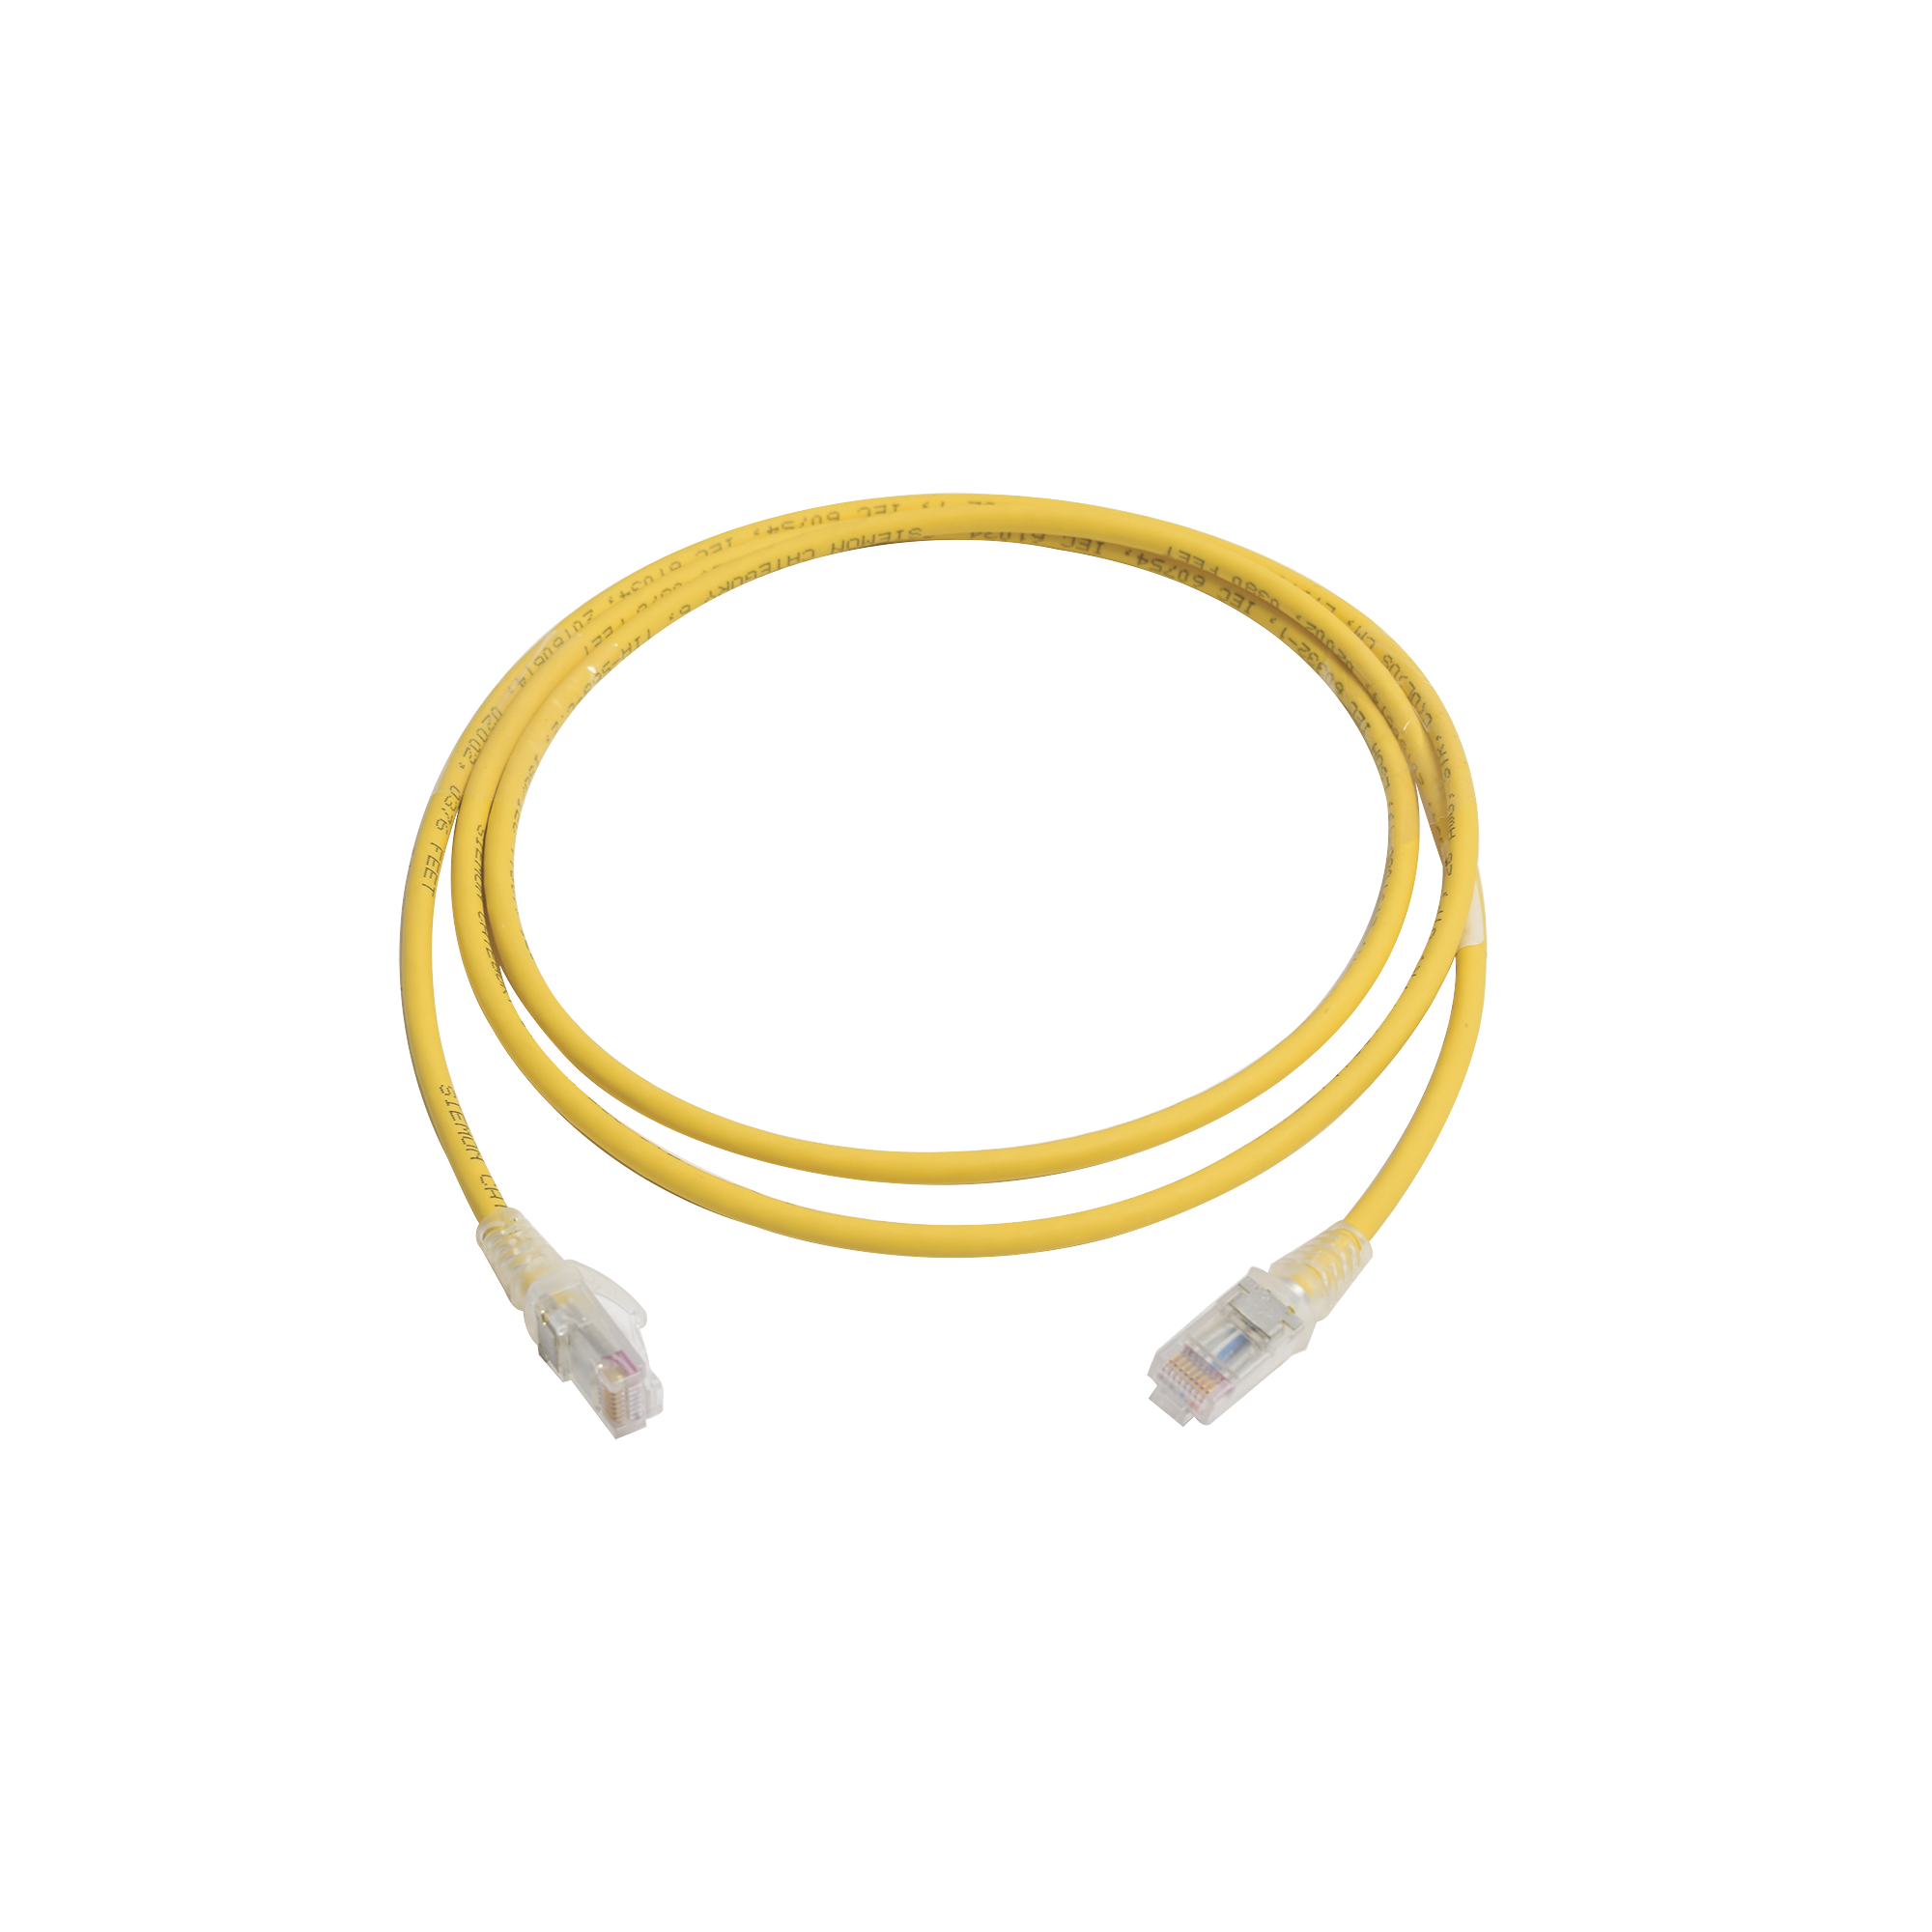 Patch Cord MC6 Modular Cat6 UTP, CM/LS0H, 5ft, Color Amarillo